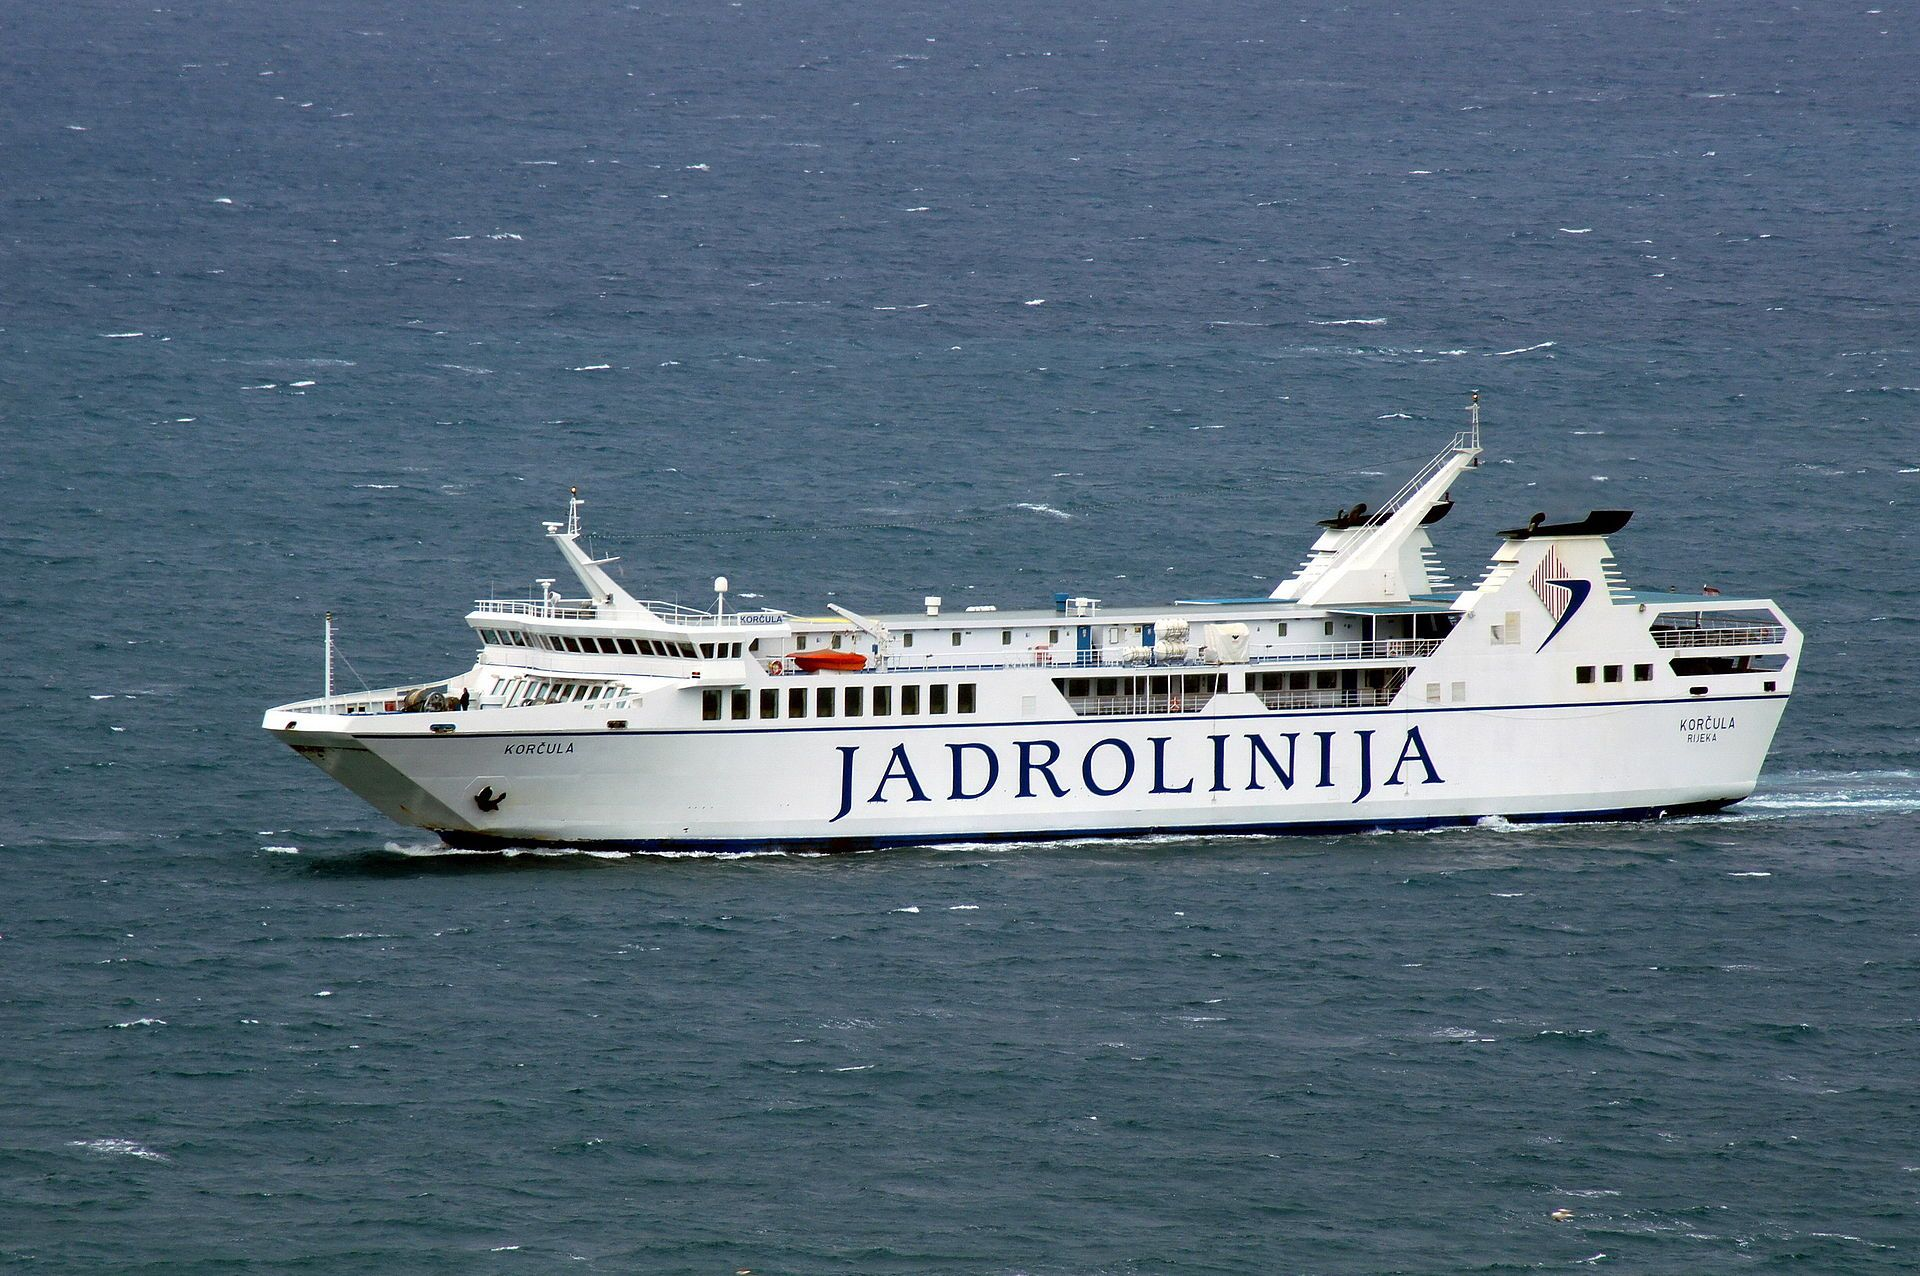 Korčula_(ship,_2007)_IMO_9476305;_in_Split,_2011-10-20.jpg